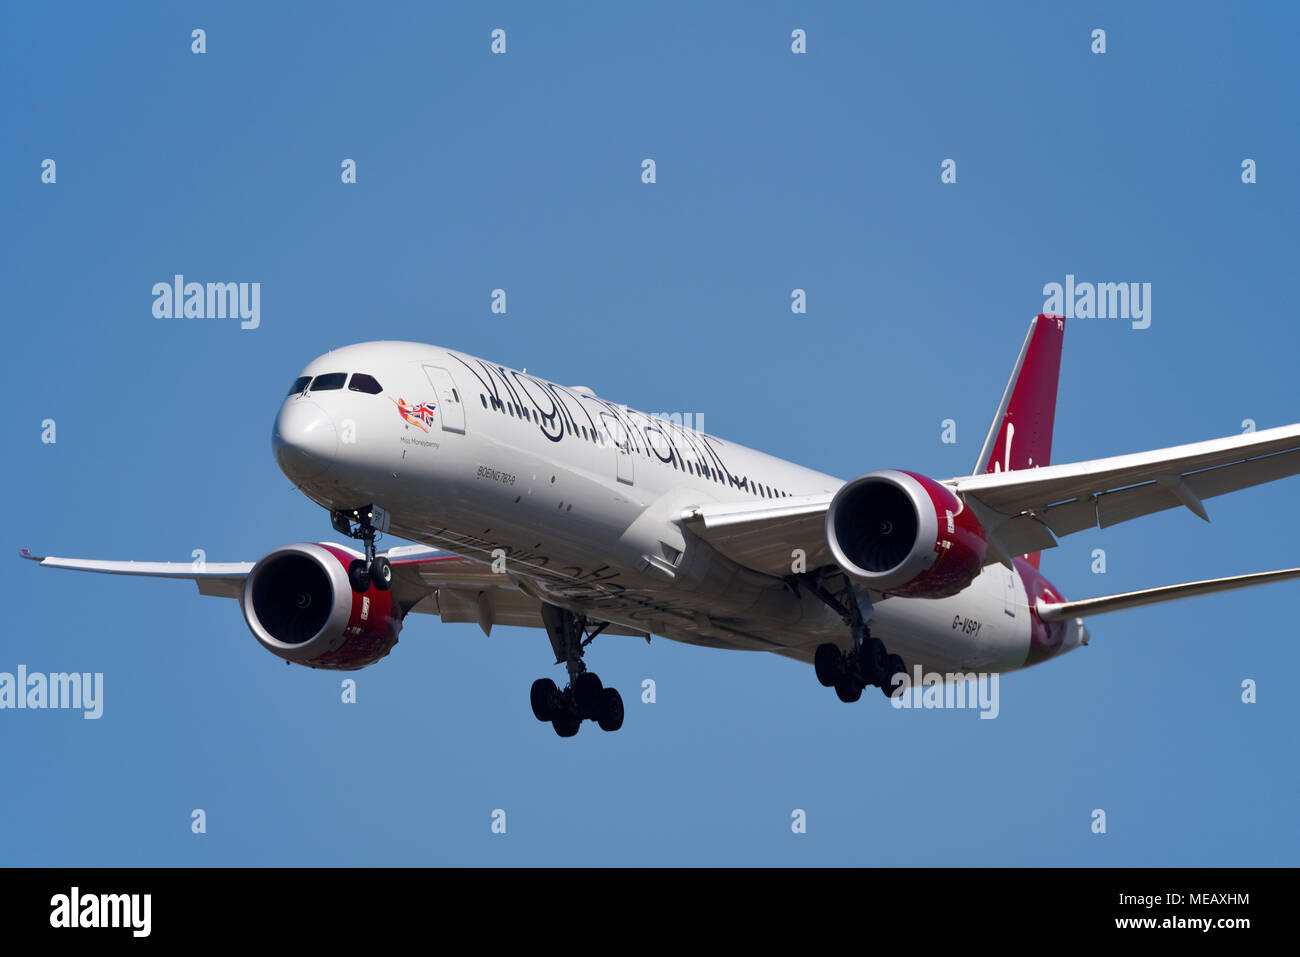 virgin-atlantic-boeing-787-dreamliner-jet-plane-coming-in-to-land-at-london-heathrow-airport-uk-in-blue-sky-named-miss-moneypenny-space-for-copy-MEAXHM.jpg